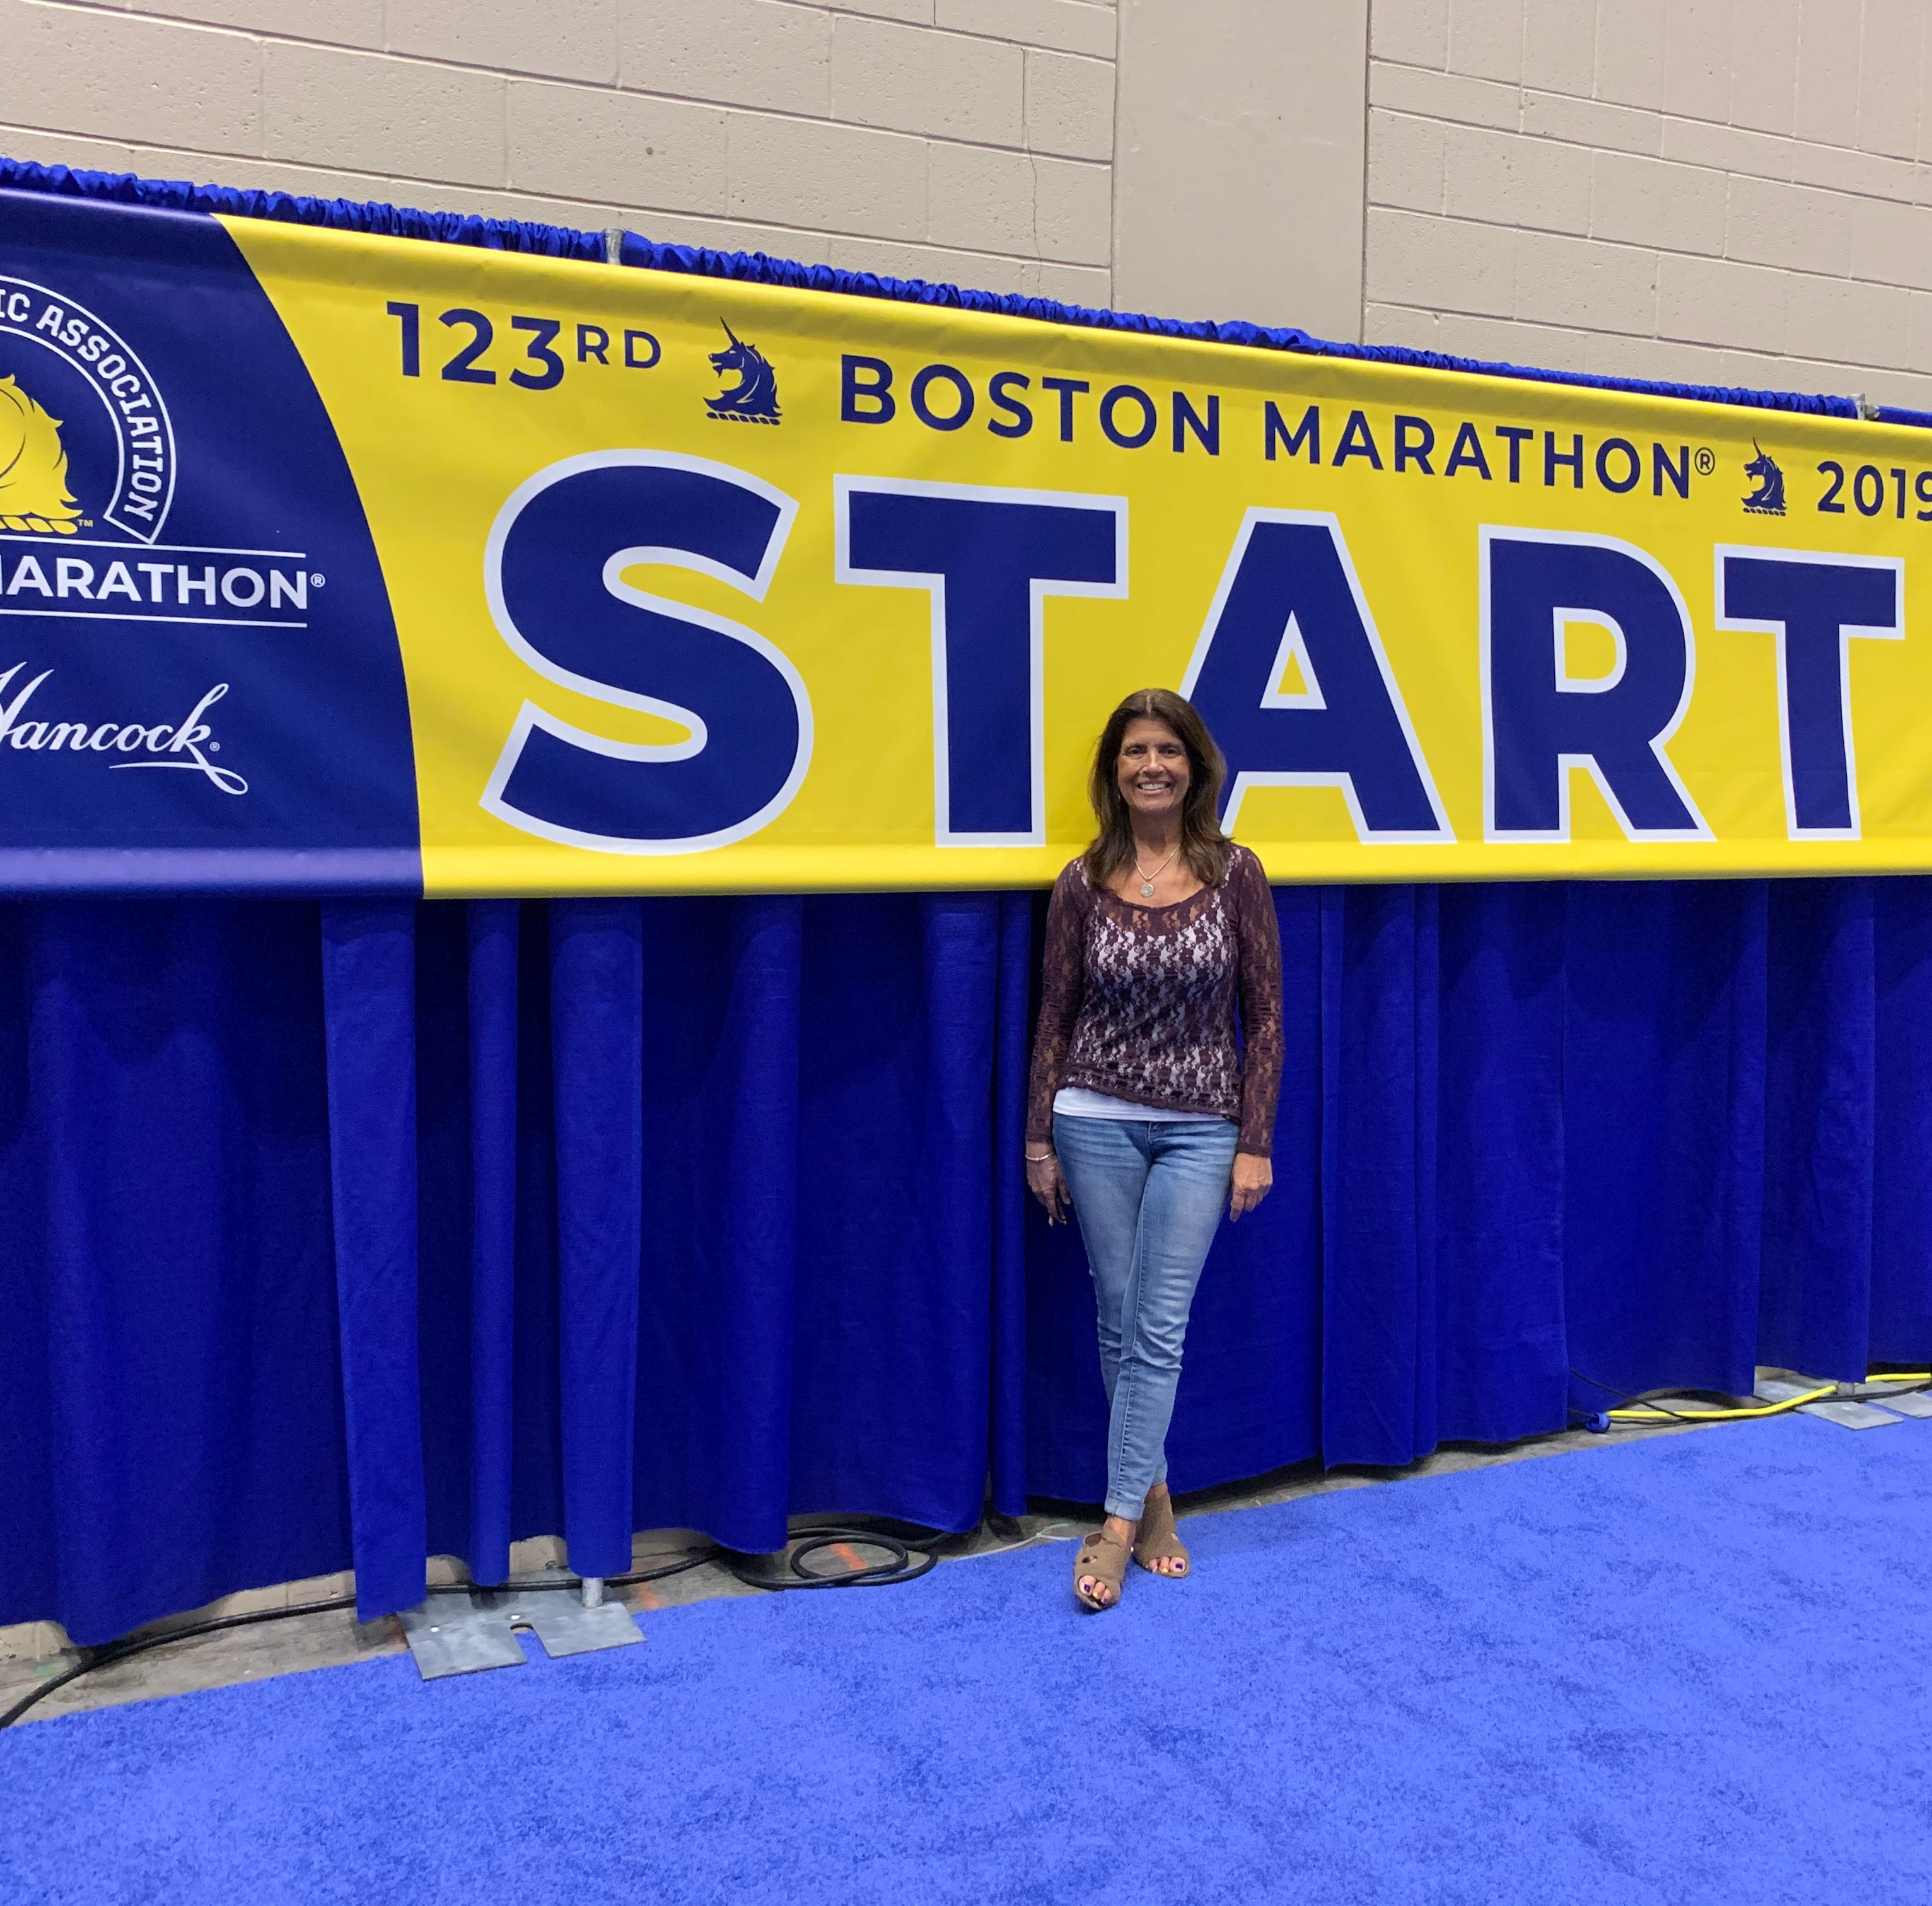 Collier County teacher to run first Boston Marathon to raise money for cancer research